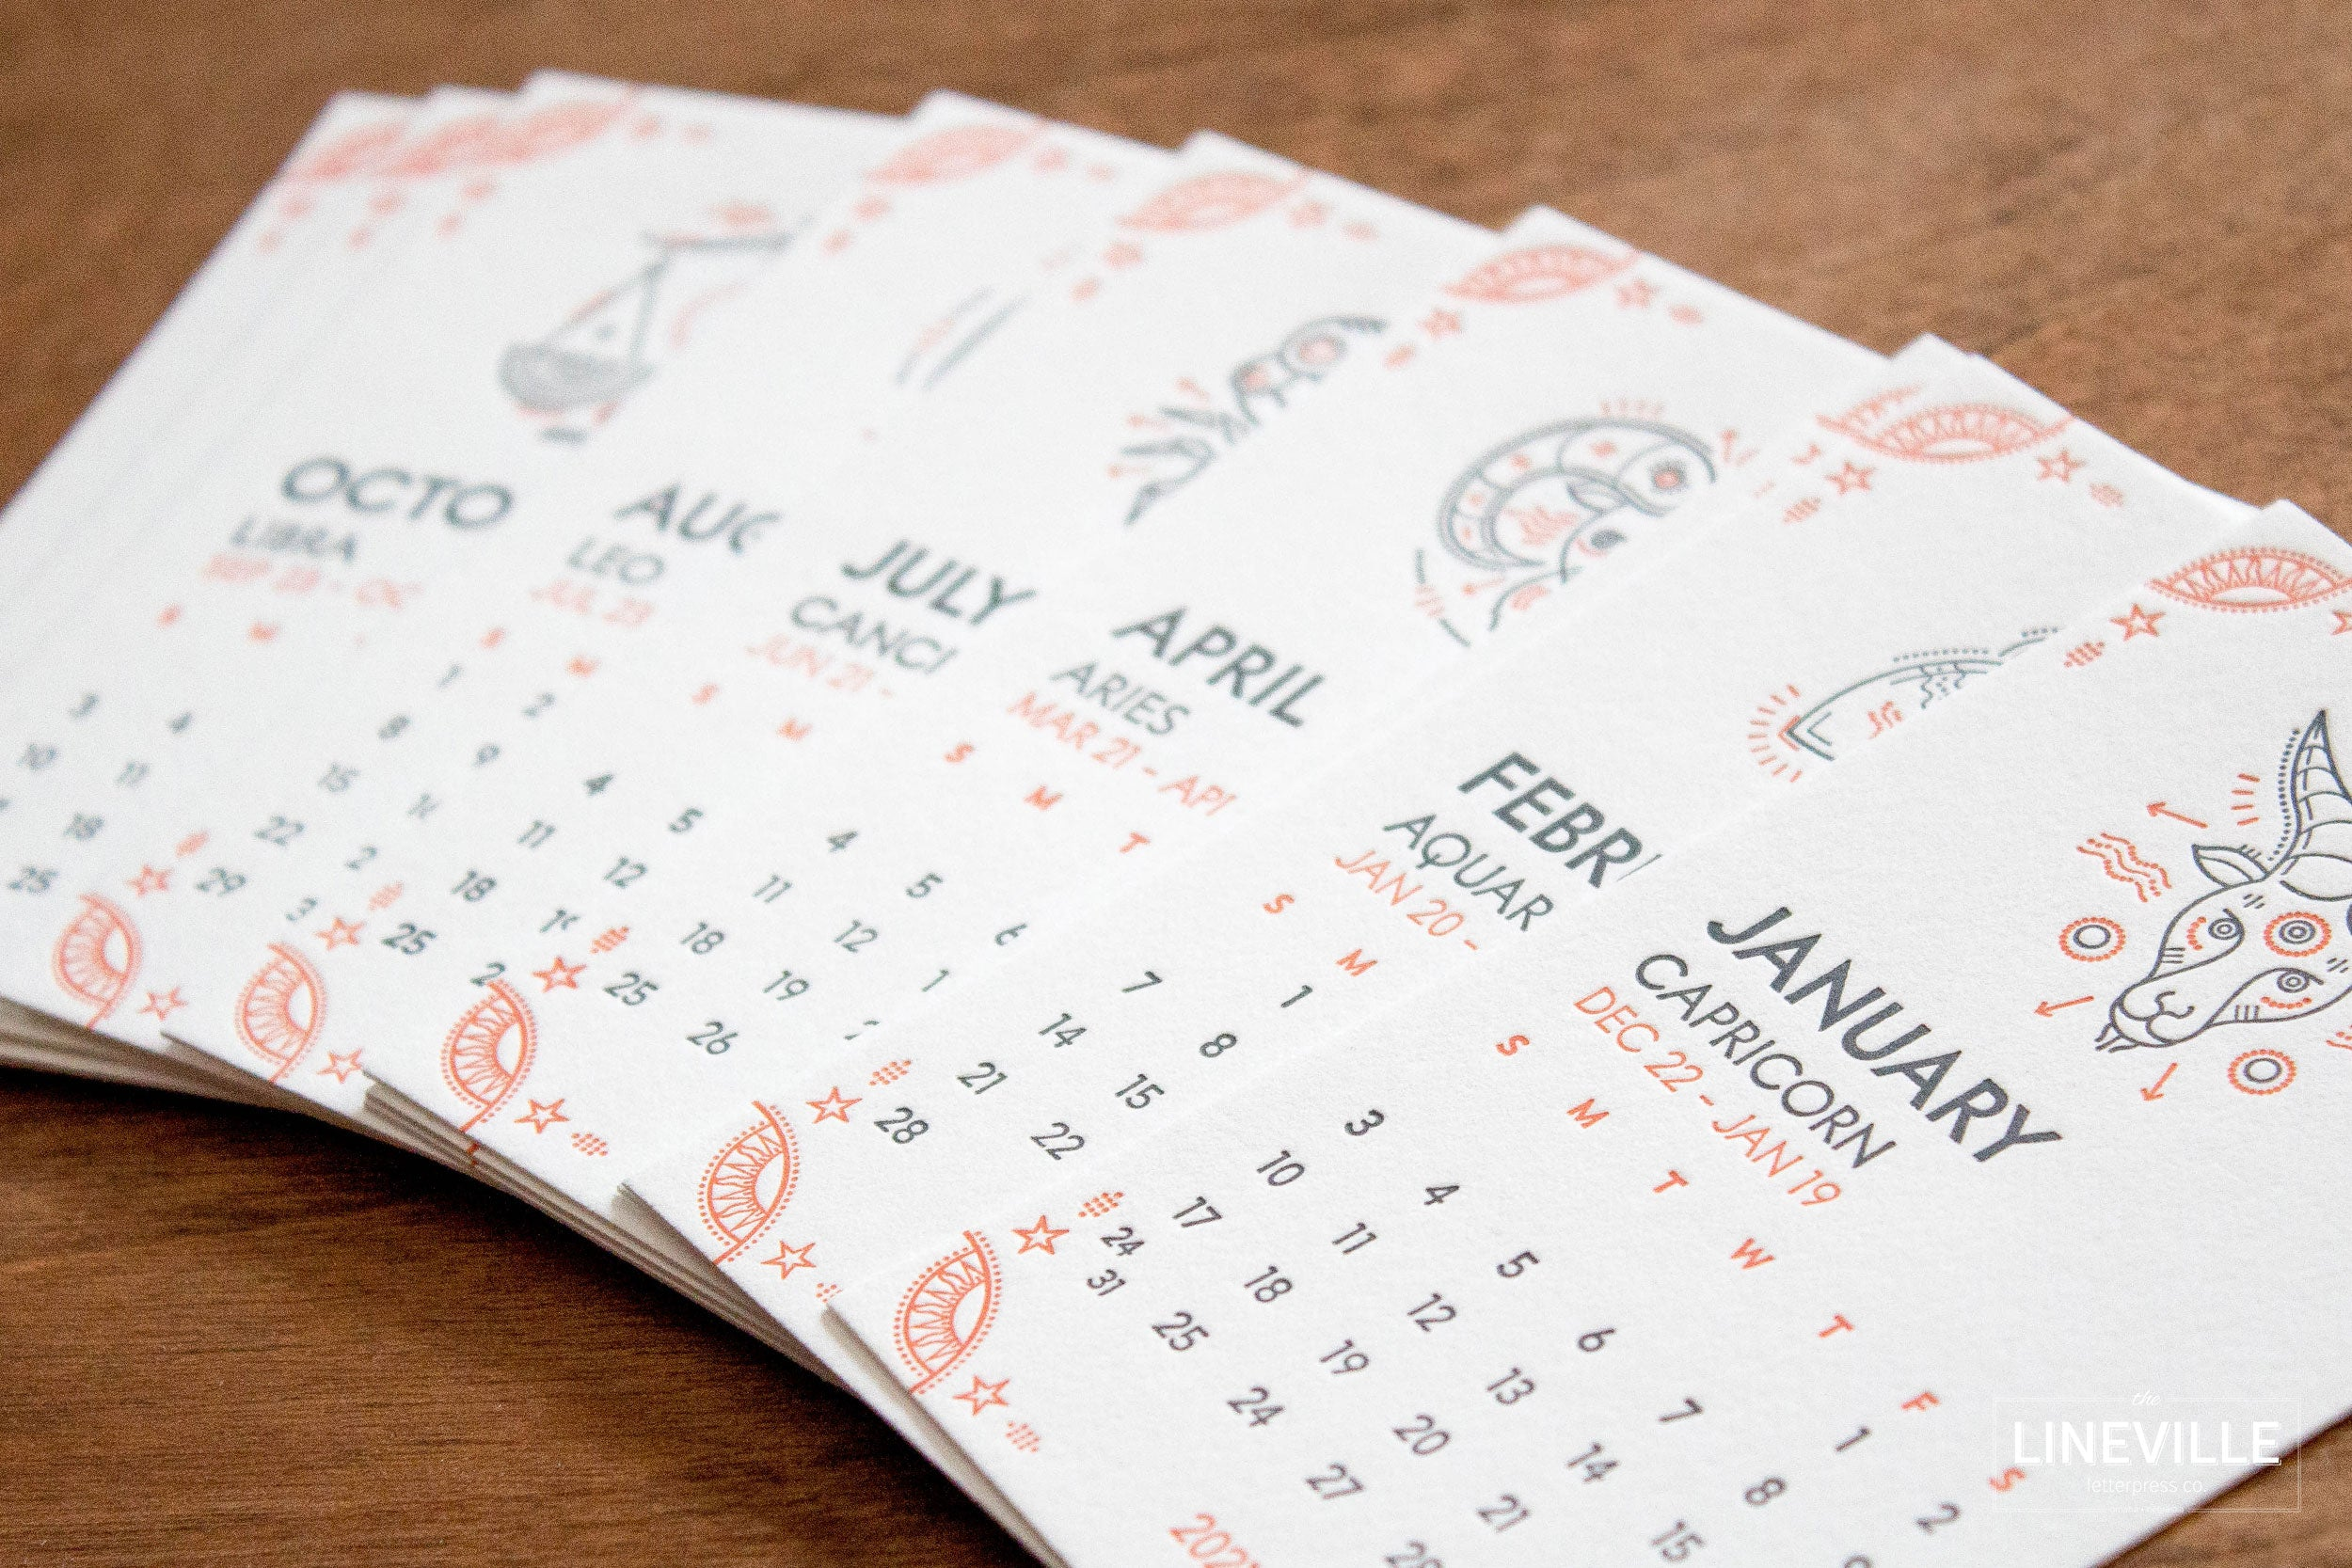 2021 Astrology Zodiac Letterpress Desk Calendar